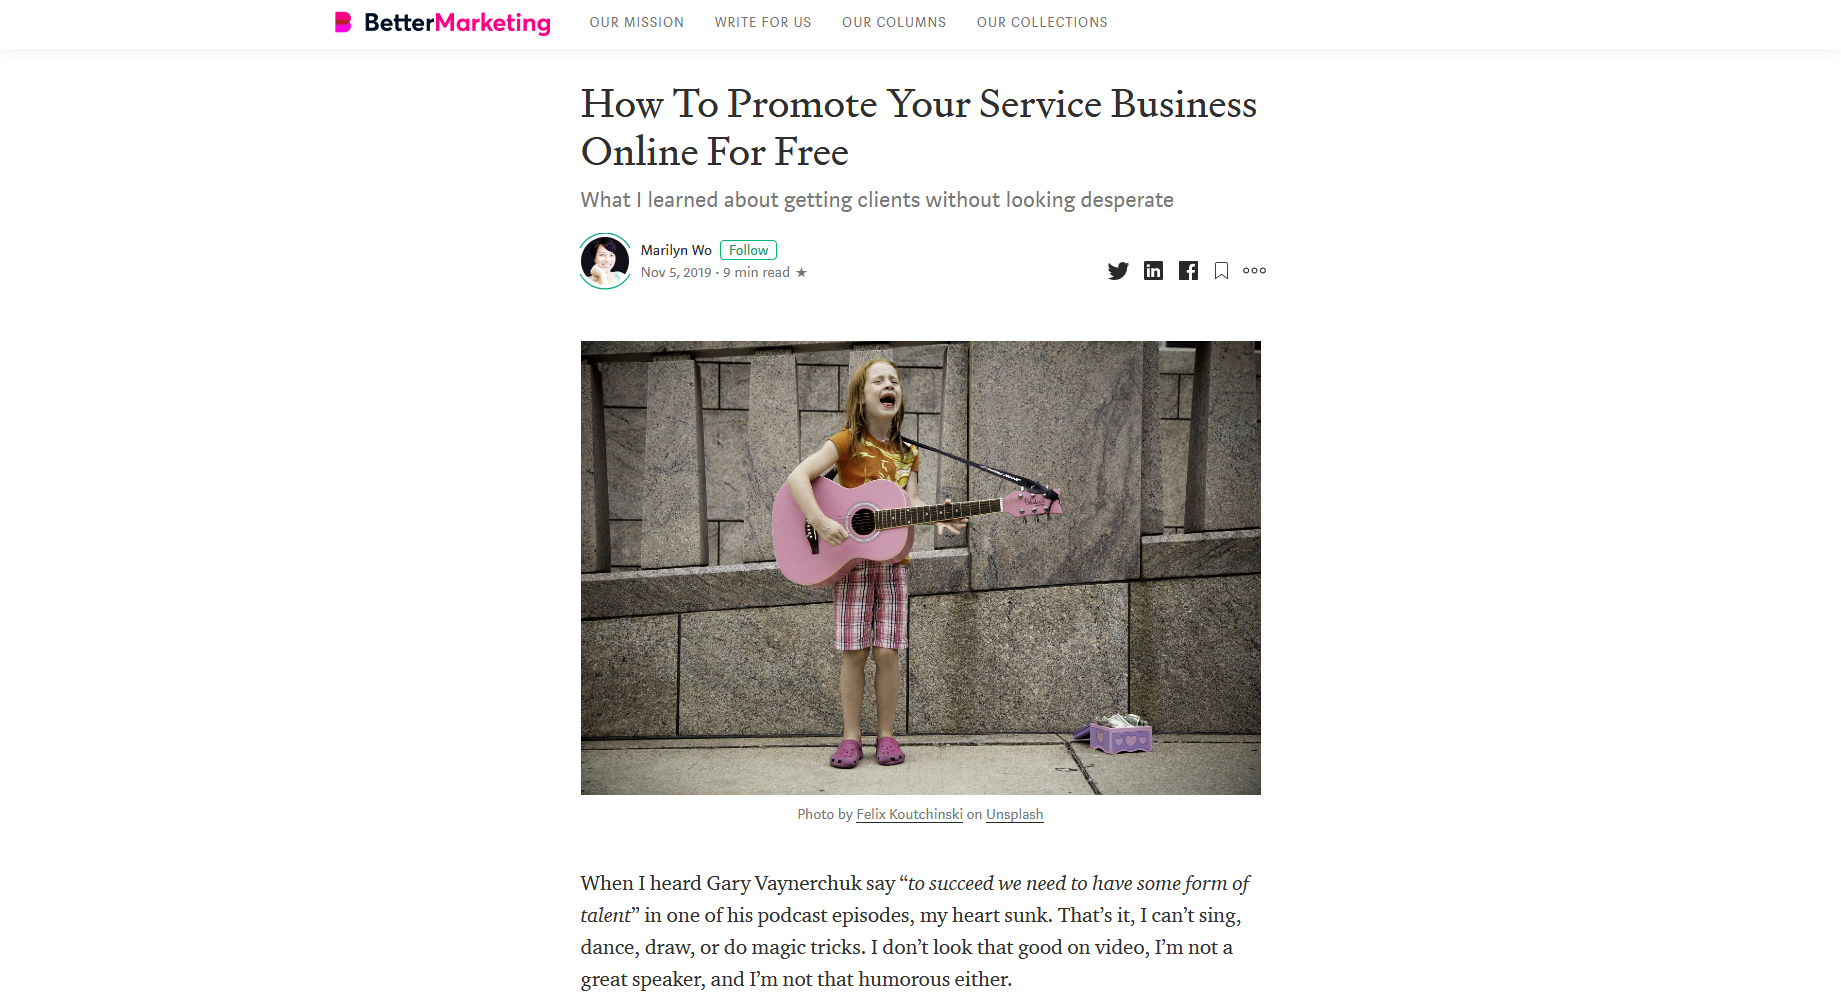 How To Promote Your Service Business Online For Free